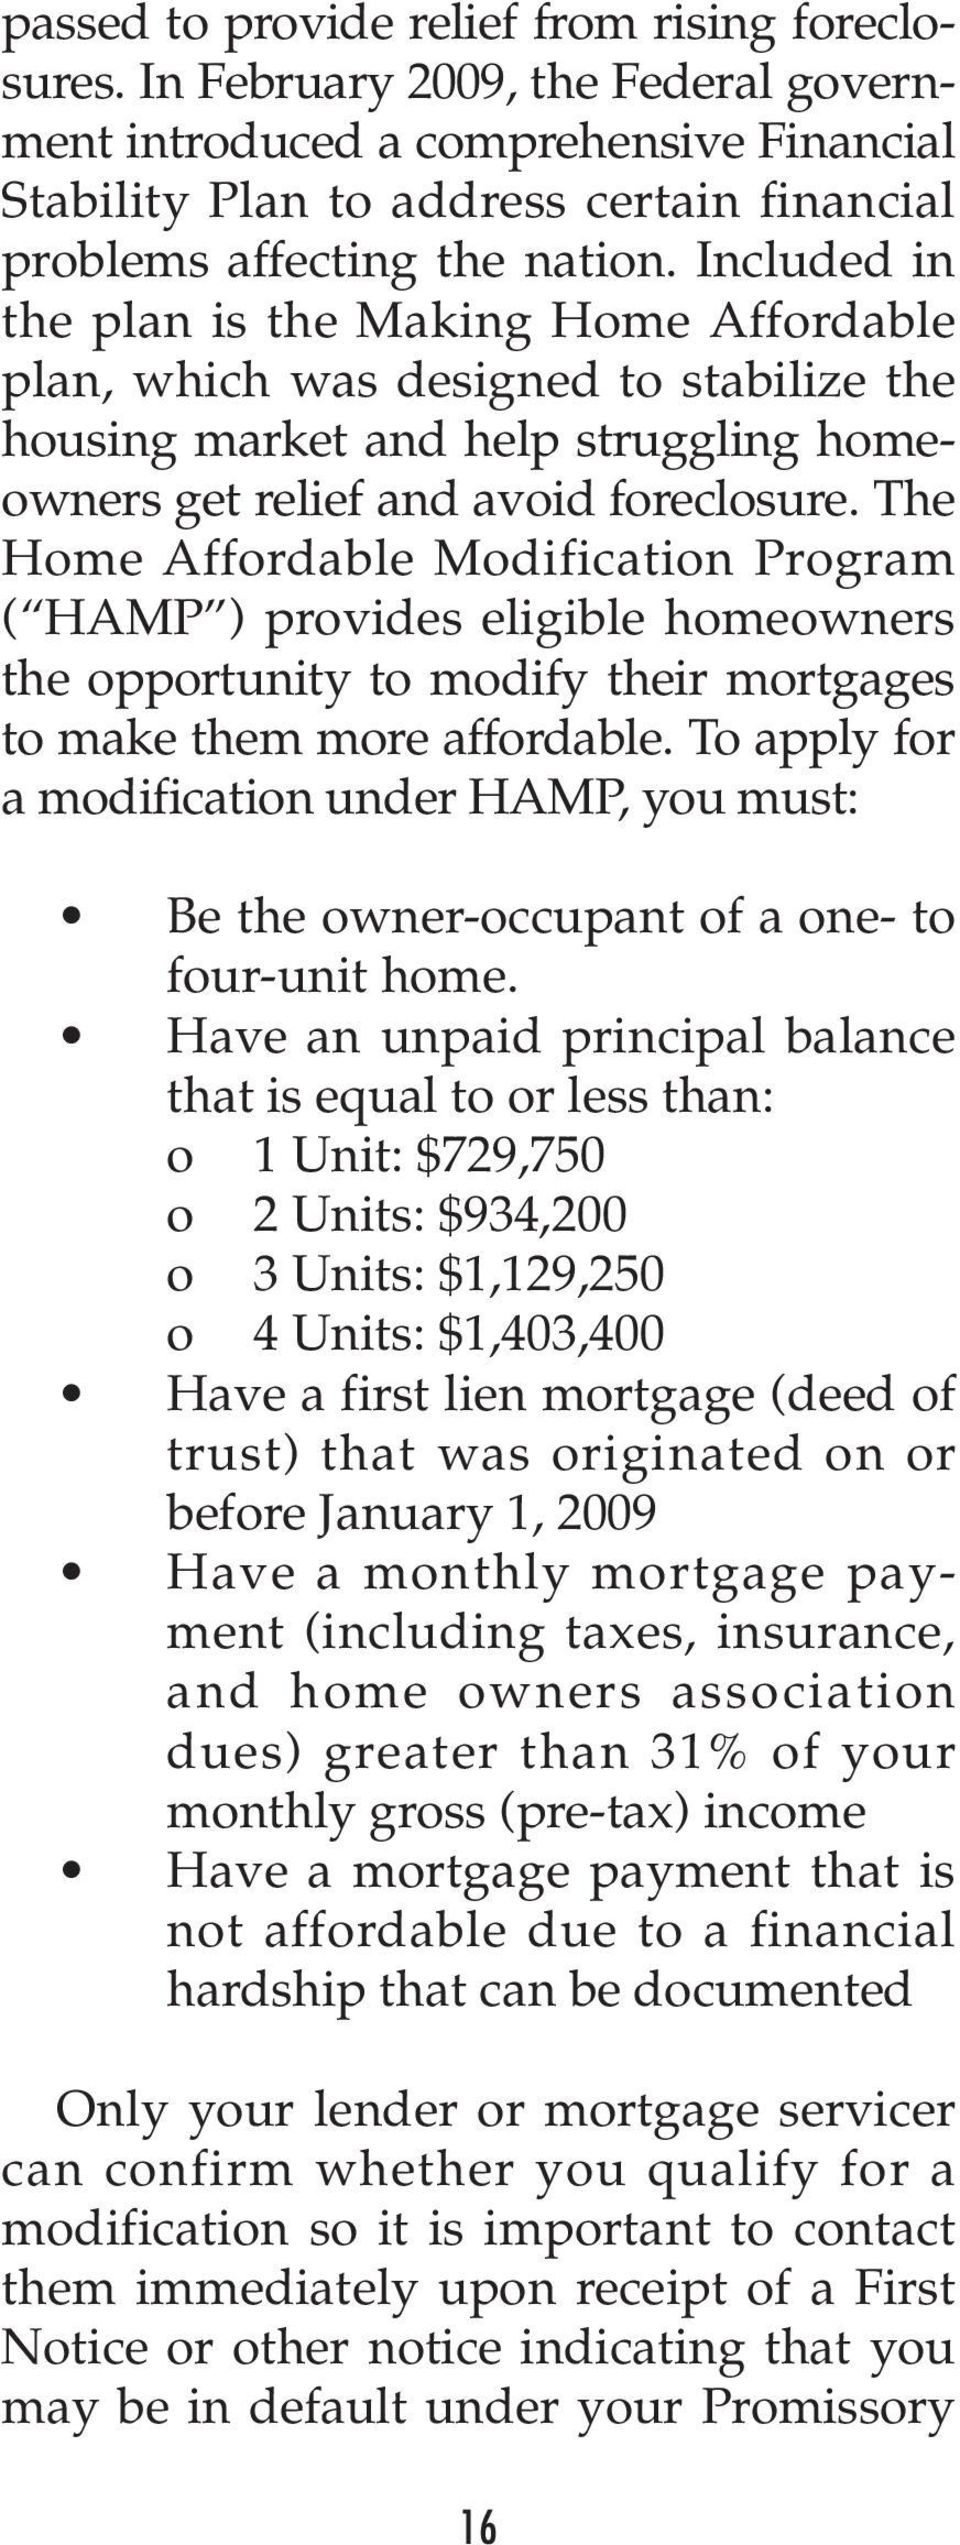 Included in the plan is the Making Home Affordable plan, which was designed to stabilize the housing market and help struggling homeowners get relief and avoid foreclosure.